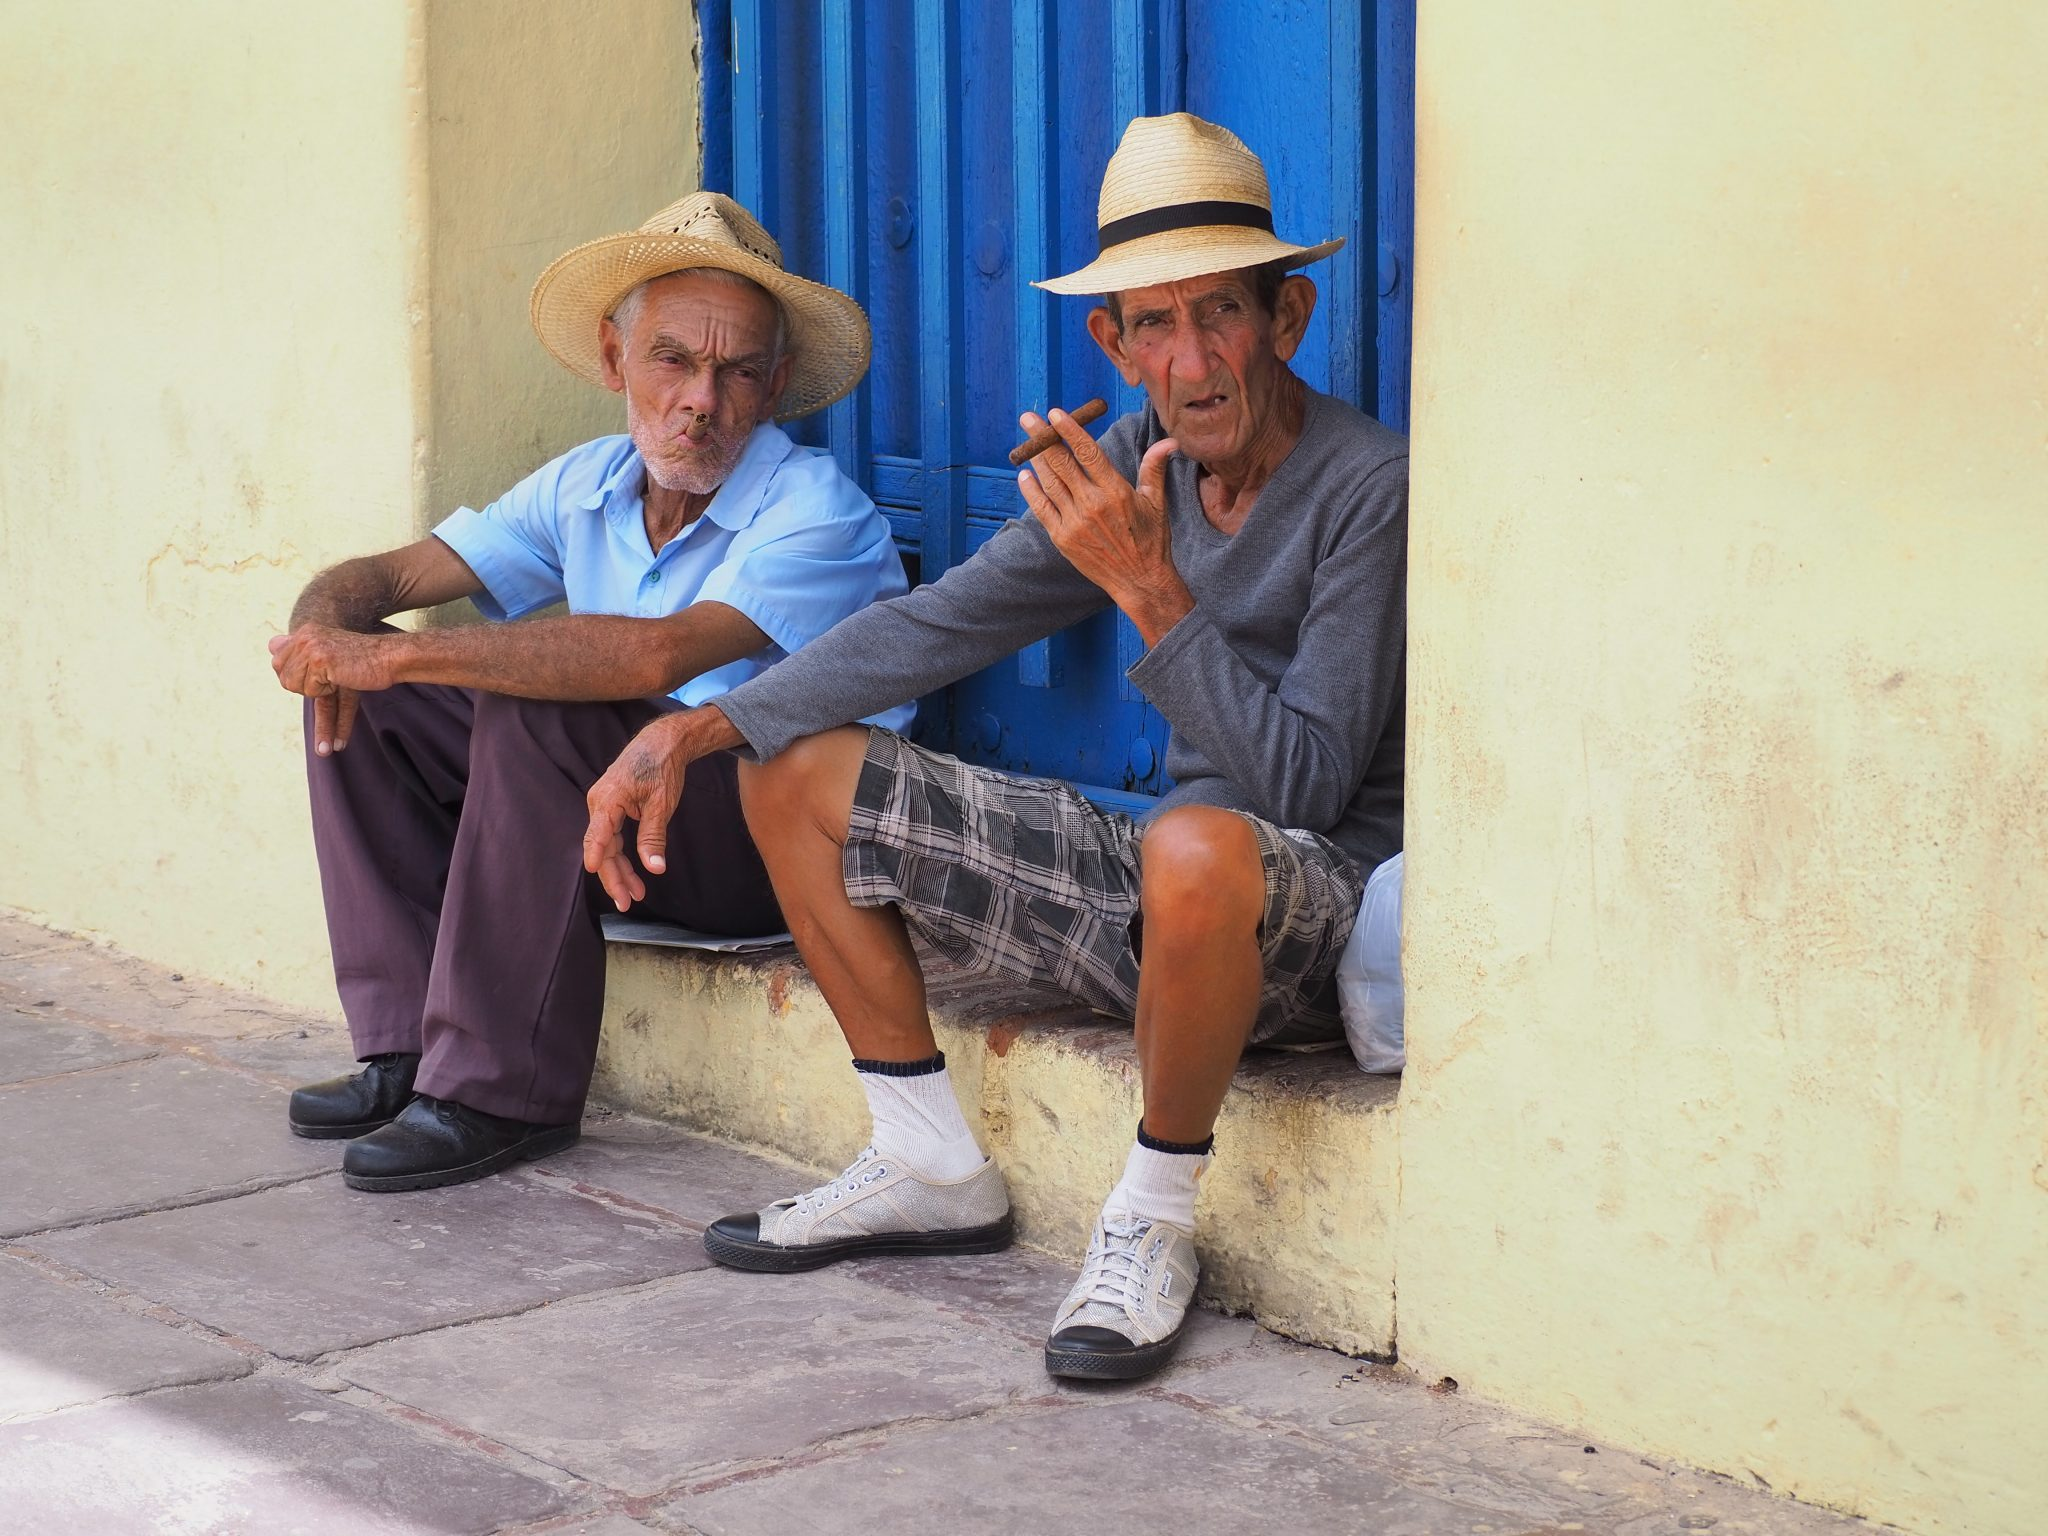 The locals of Trinidad watching the world go by.